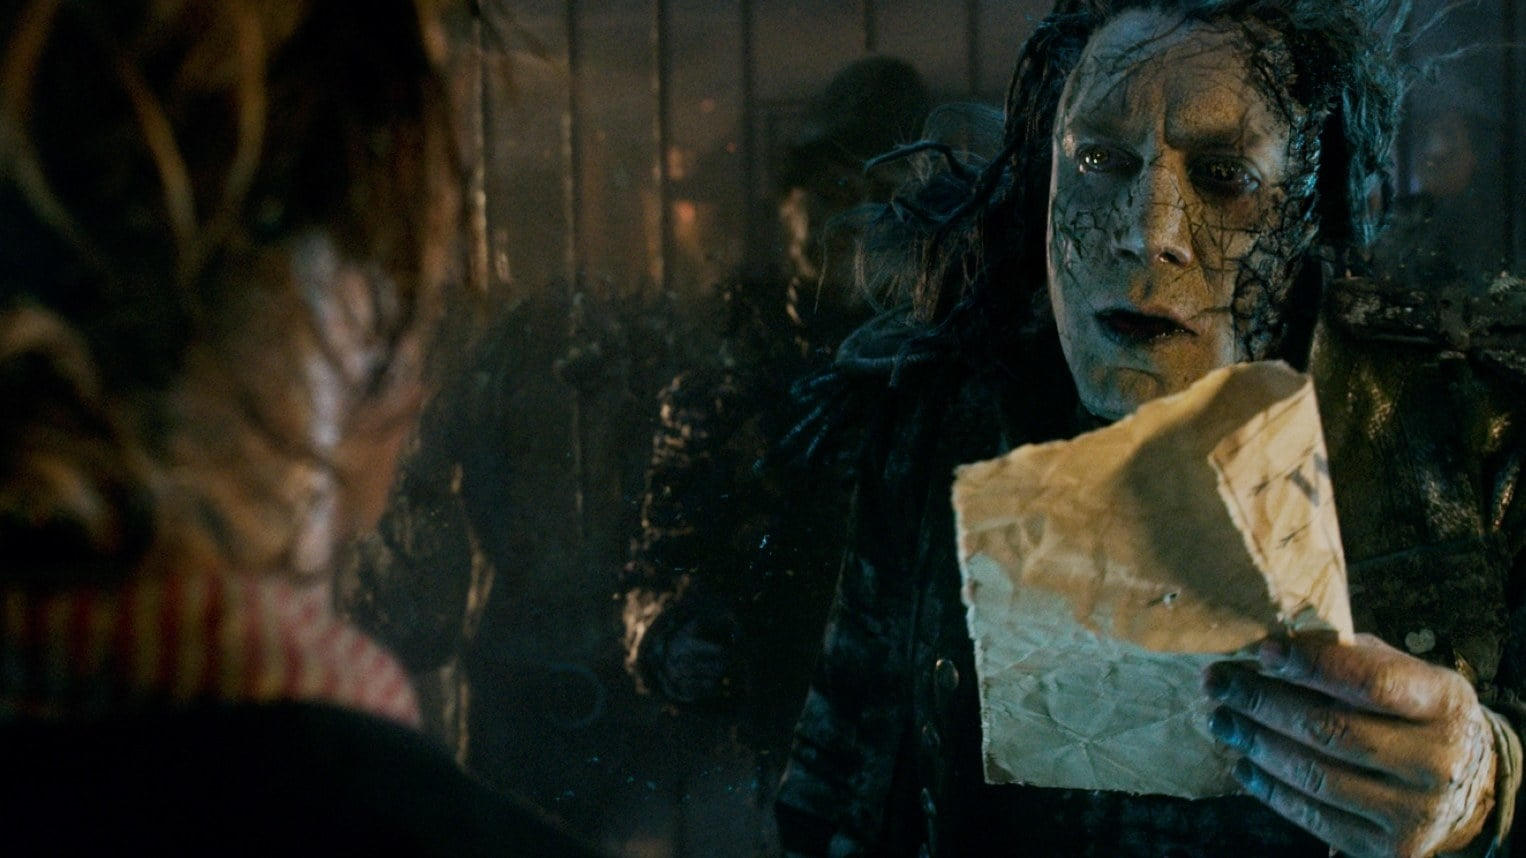 Captain Salazar, played by Javier Bardem, holding a crumpled piece of paper talking to another in the movie Pirates of the Caribbean: Dead Men Tell No Tales